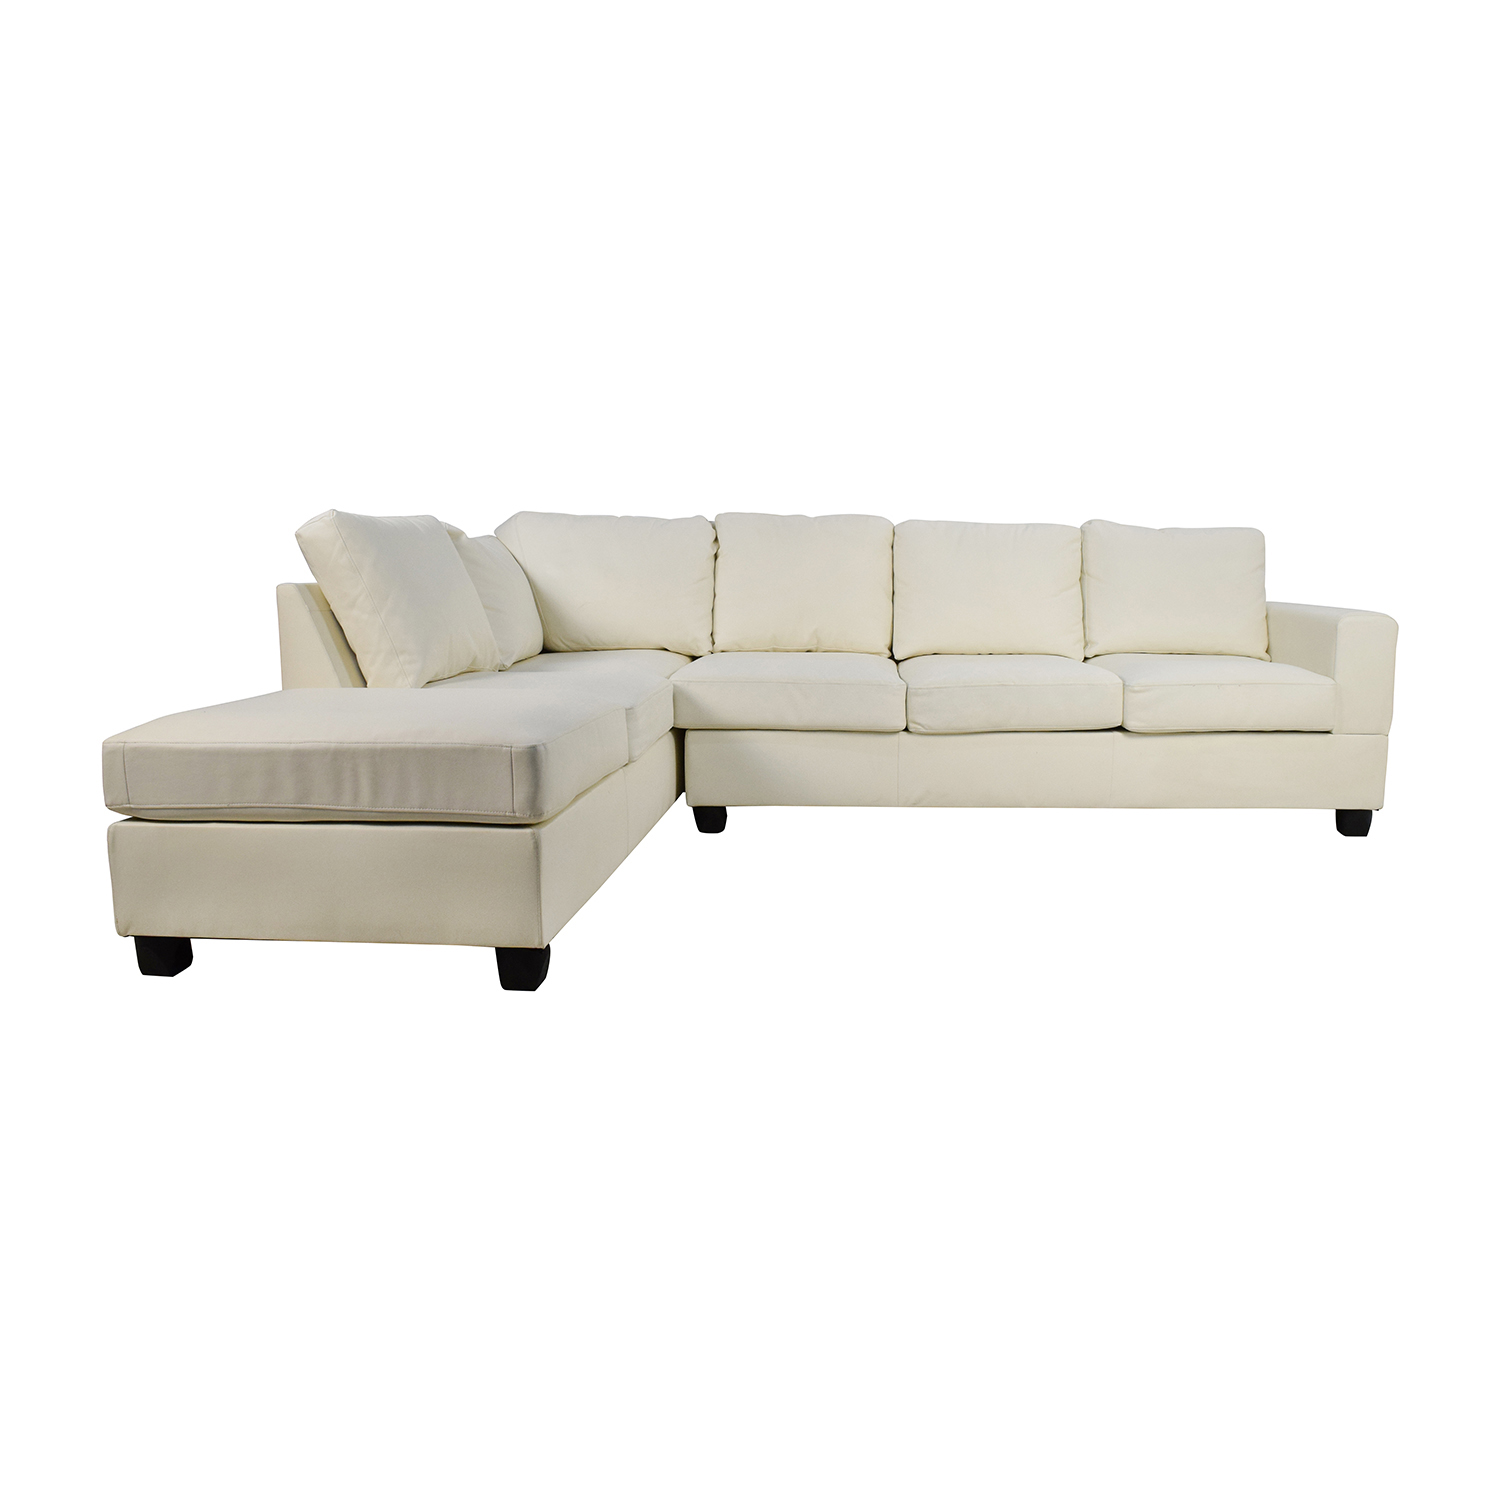 45 off l shaped white leather sectional sofas